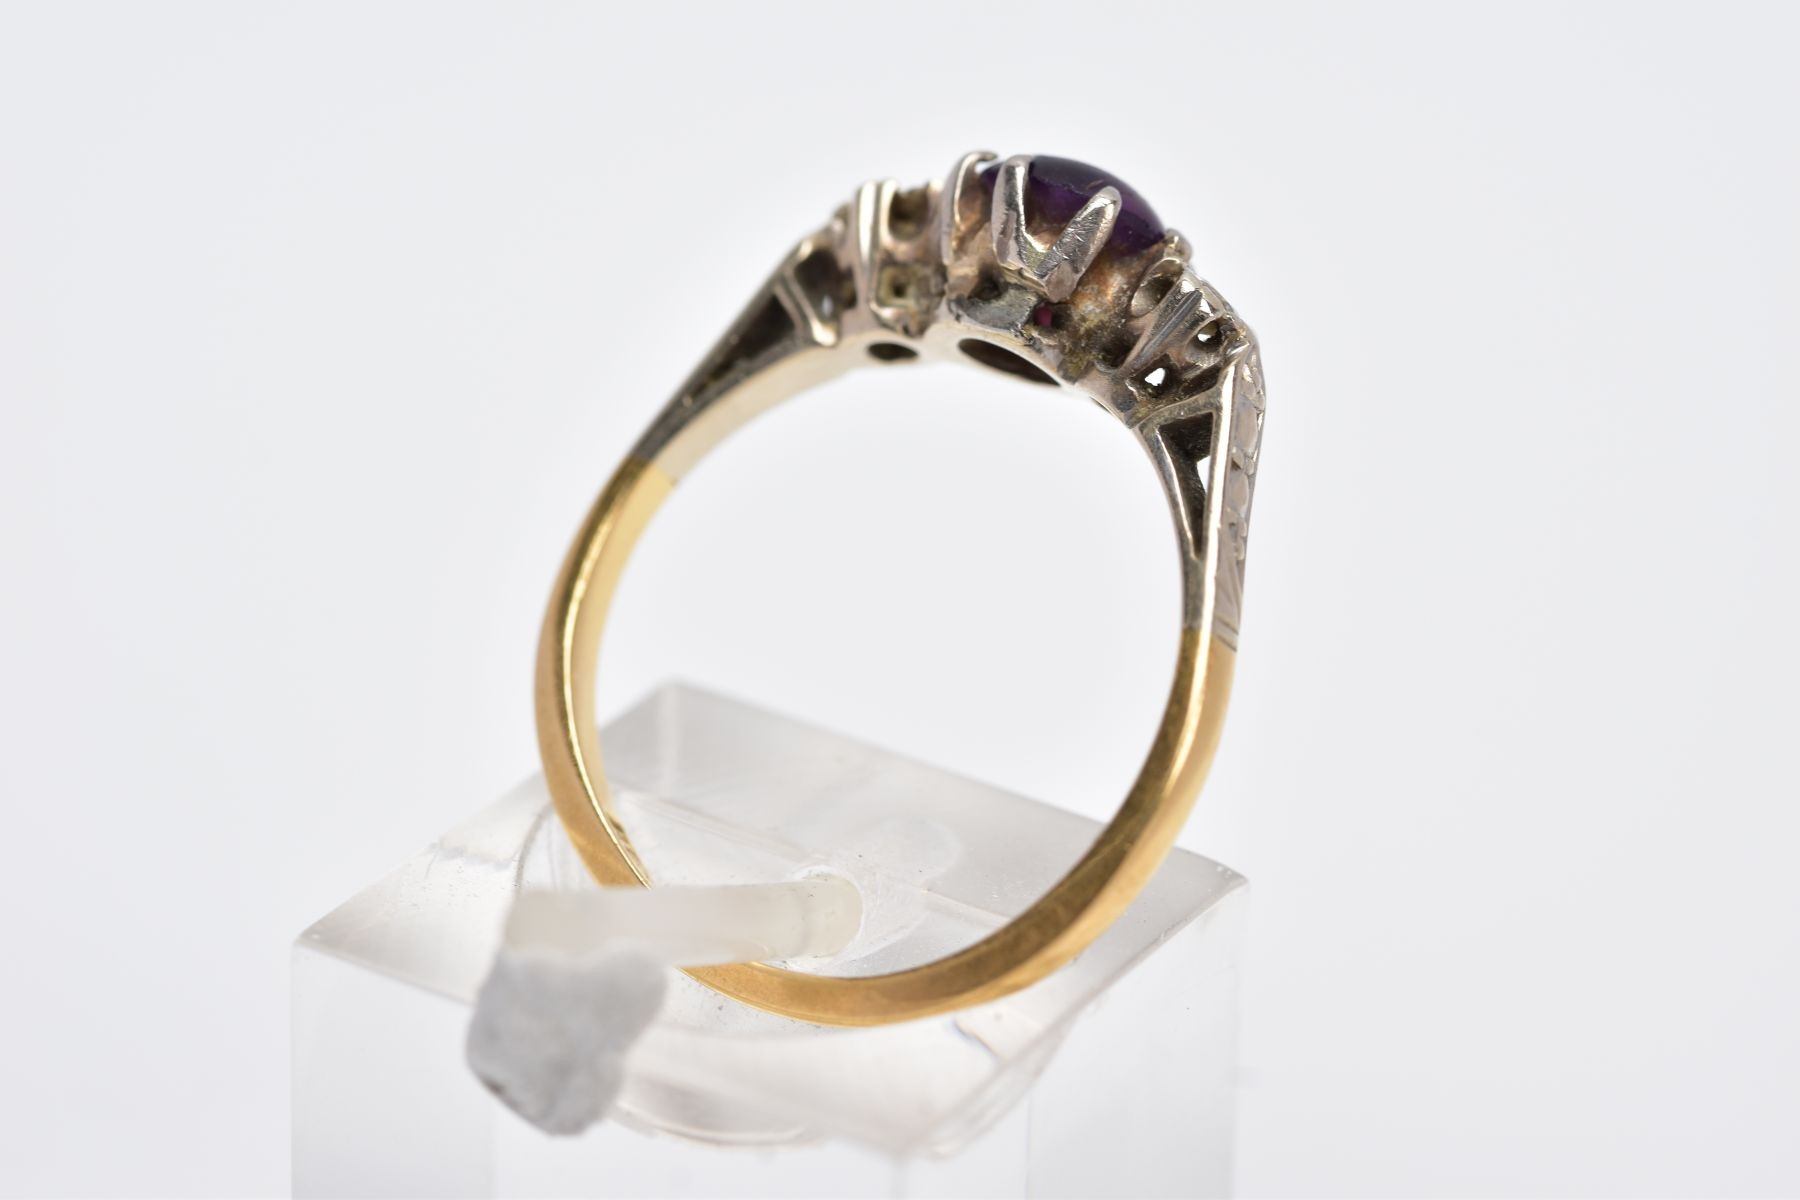 A YELLOW METAL THREE STONE RING, design with a central circular cut purple stone, assessed as paste, - Image 3 of 4